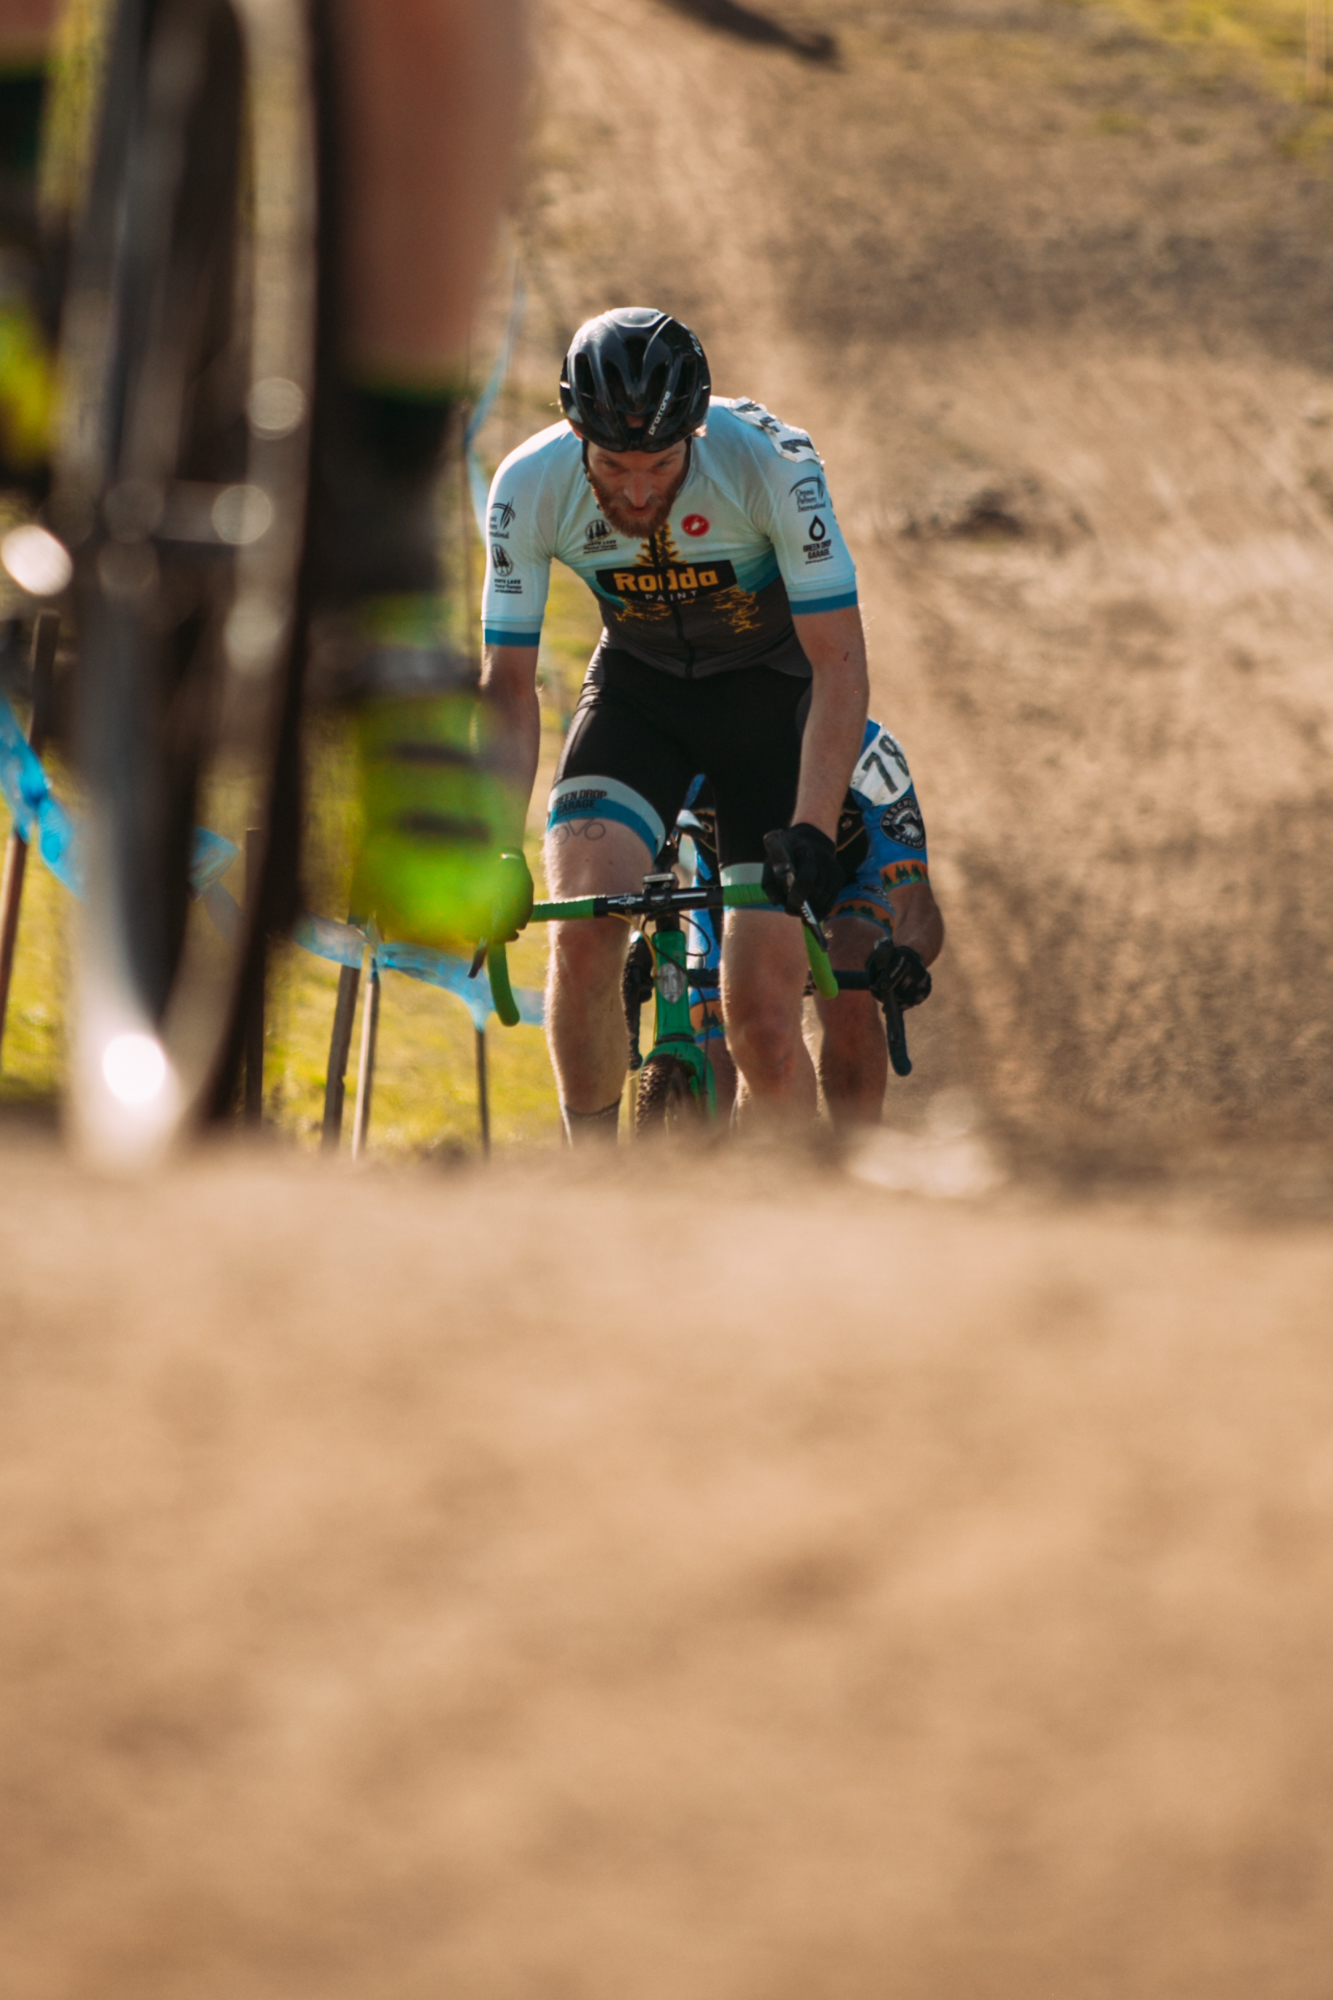 Cyclocross18_CCCX_RainierHS-201-mettlecycling.jpg